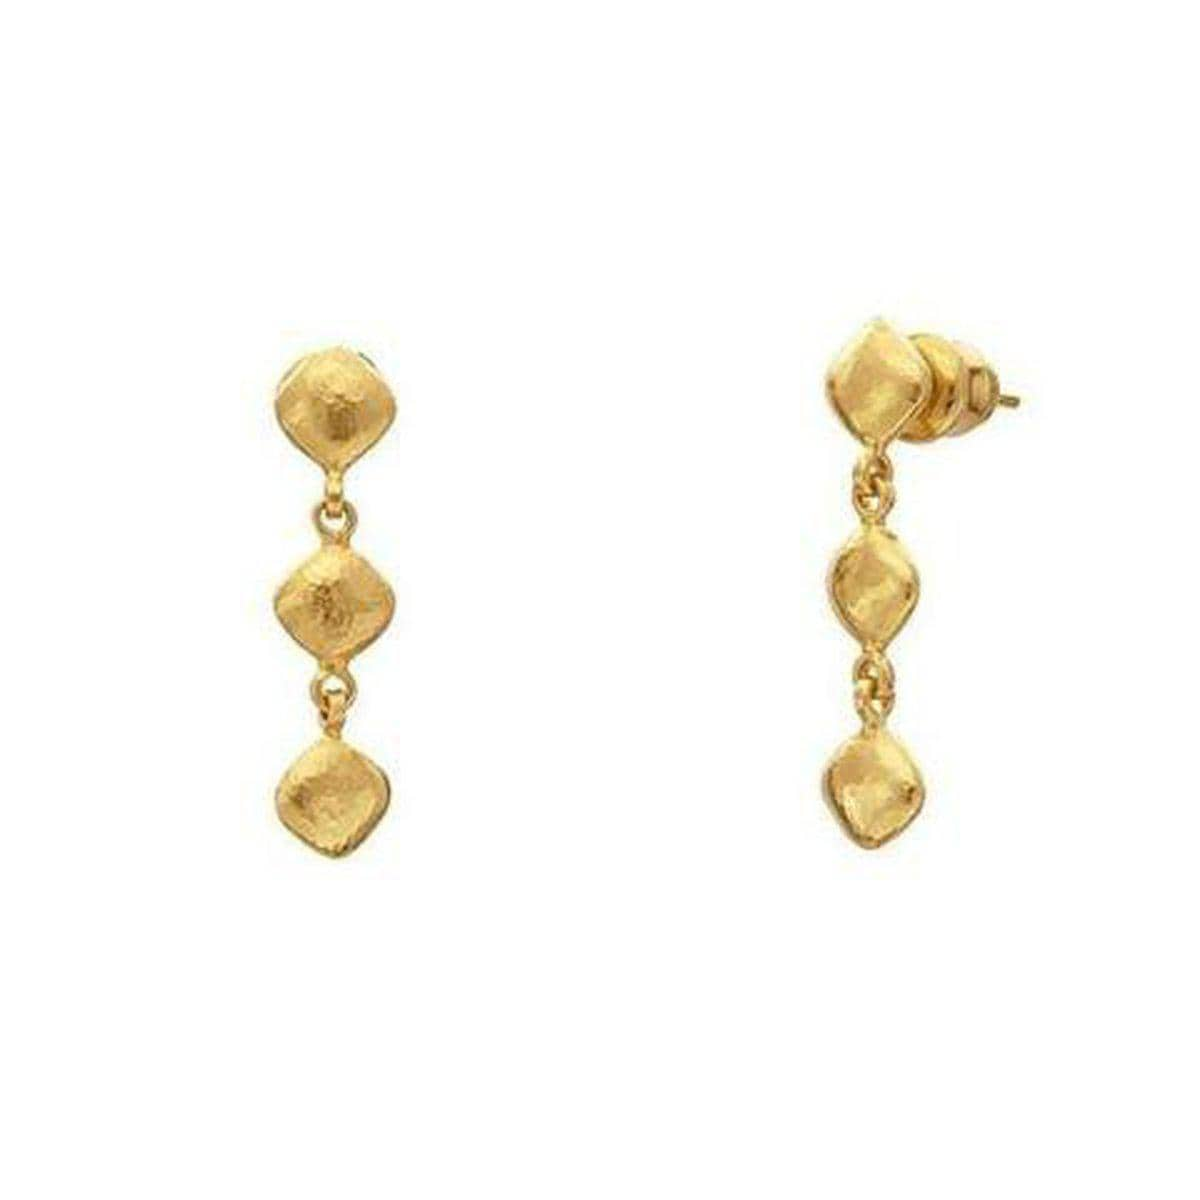 Spell 22K Gold Earrings - E-3CLT-P-GURHAN-Renee Taylor Gallery